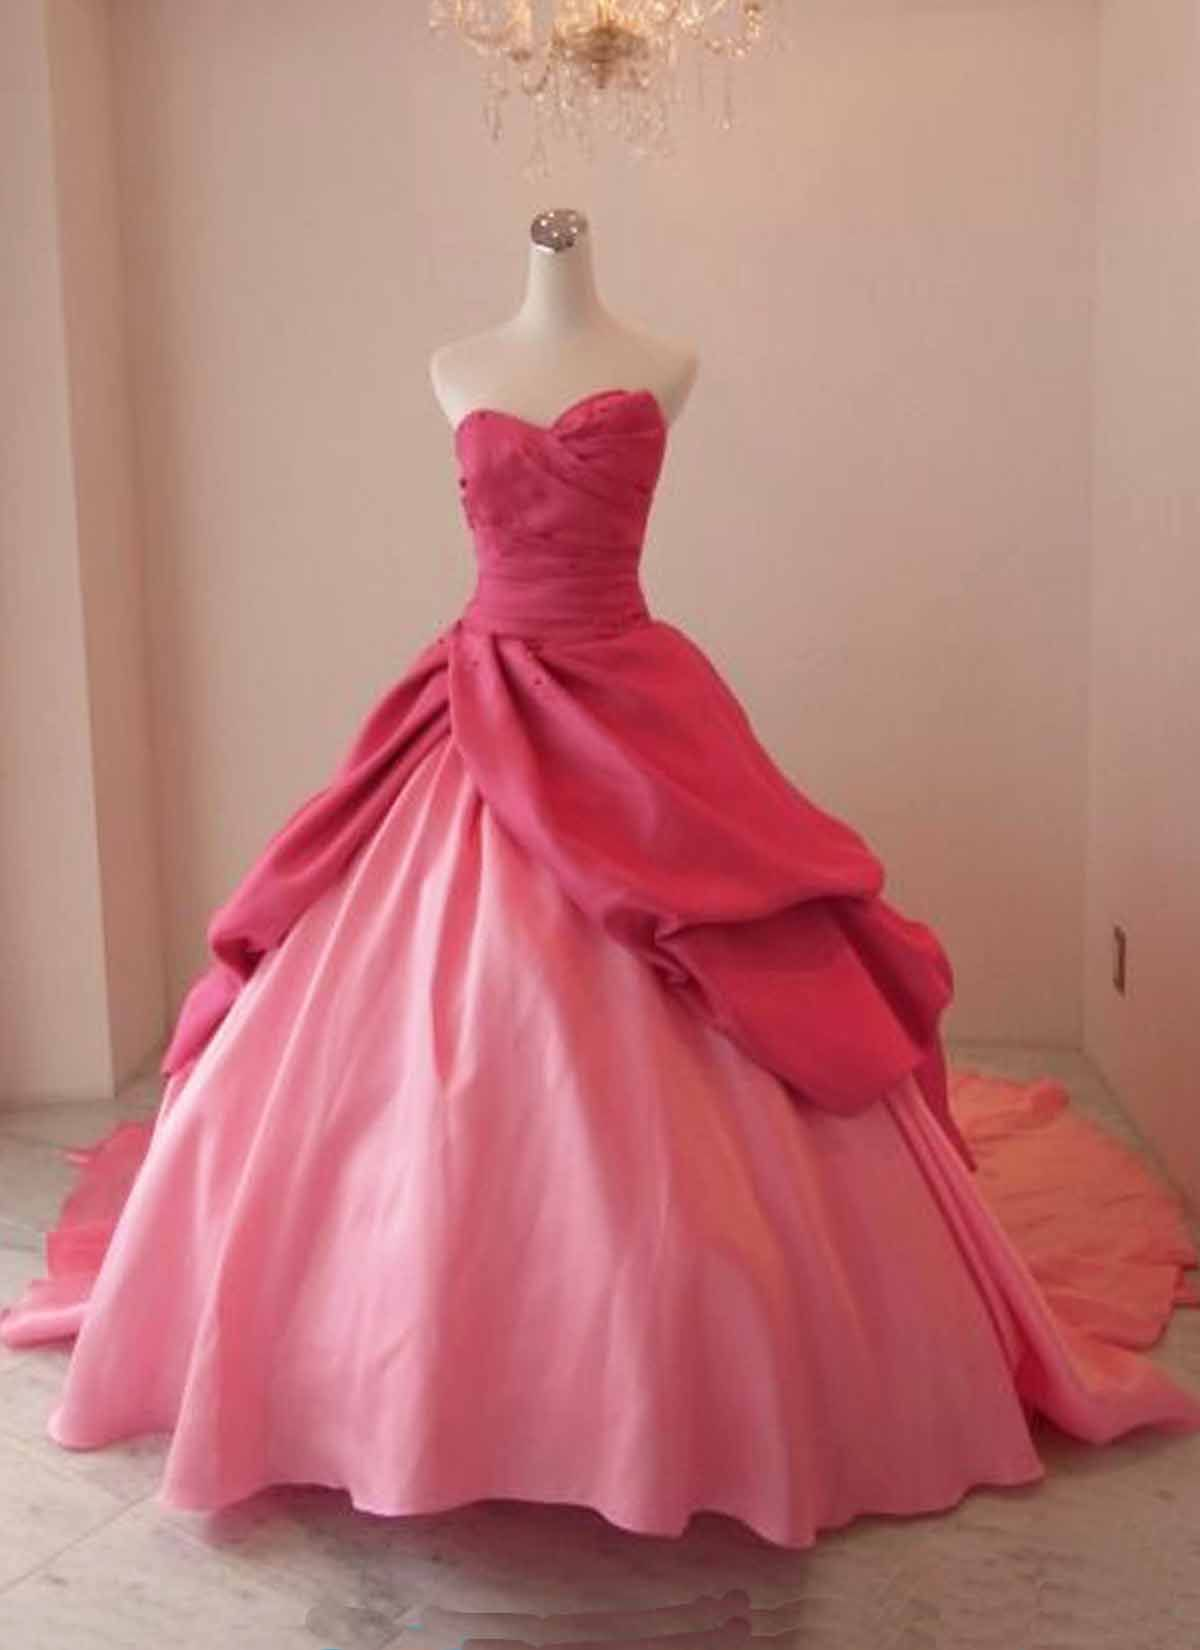 Pink taffeta strapless long ball gown pink vintage prom dress prom